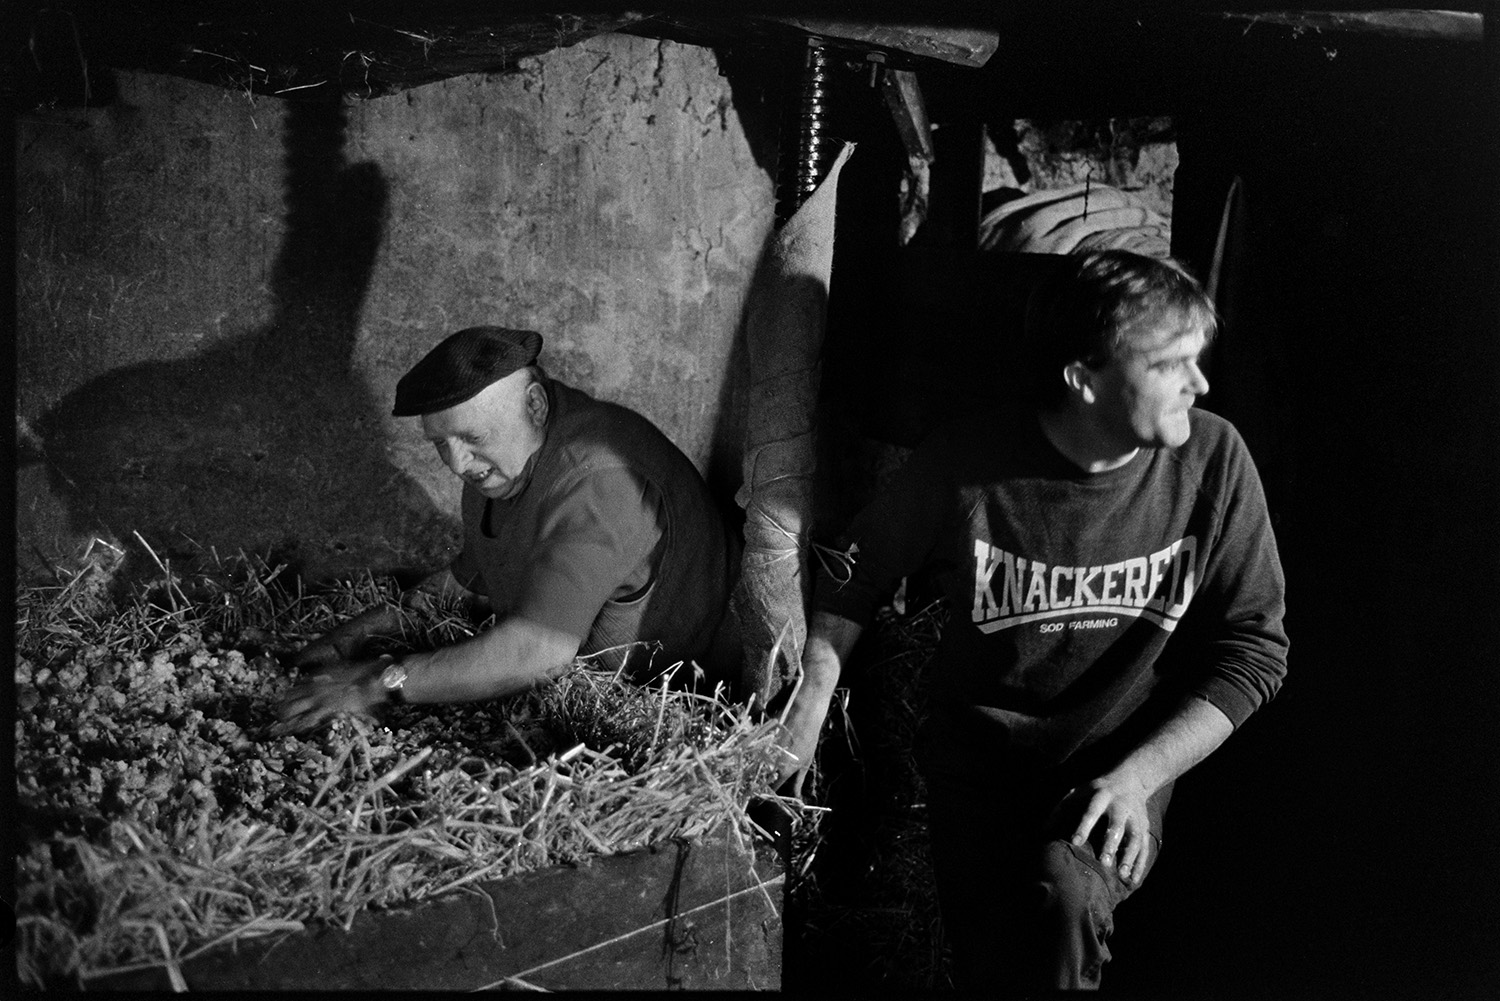 Farmers pressing cider in barn. Baskets of apples poured into crusher.<br /> [Bill Bending, wearing a cap, showing a younger man, Mr Down, how to use a cider press at Spittle, Chulmleigh.]